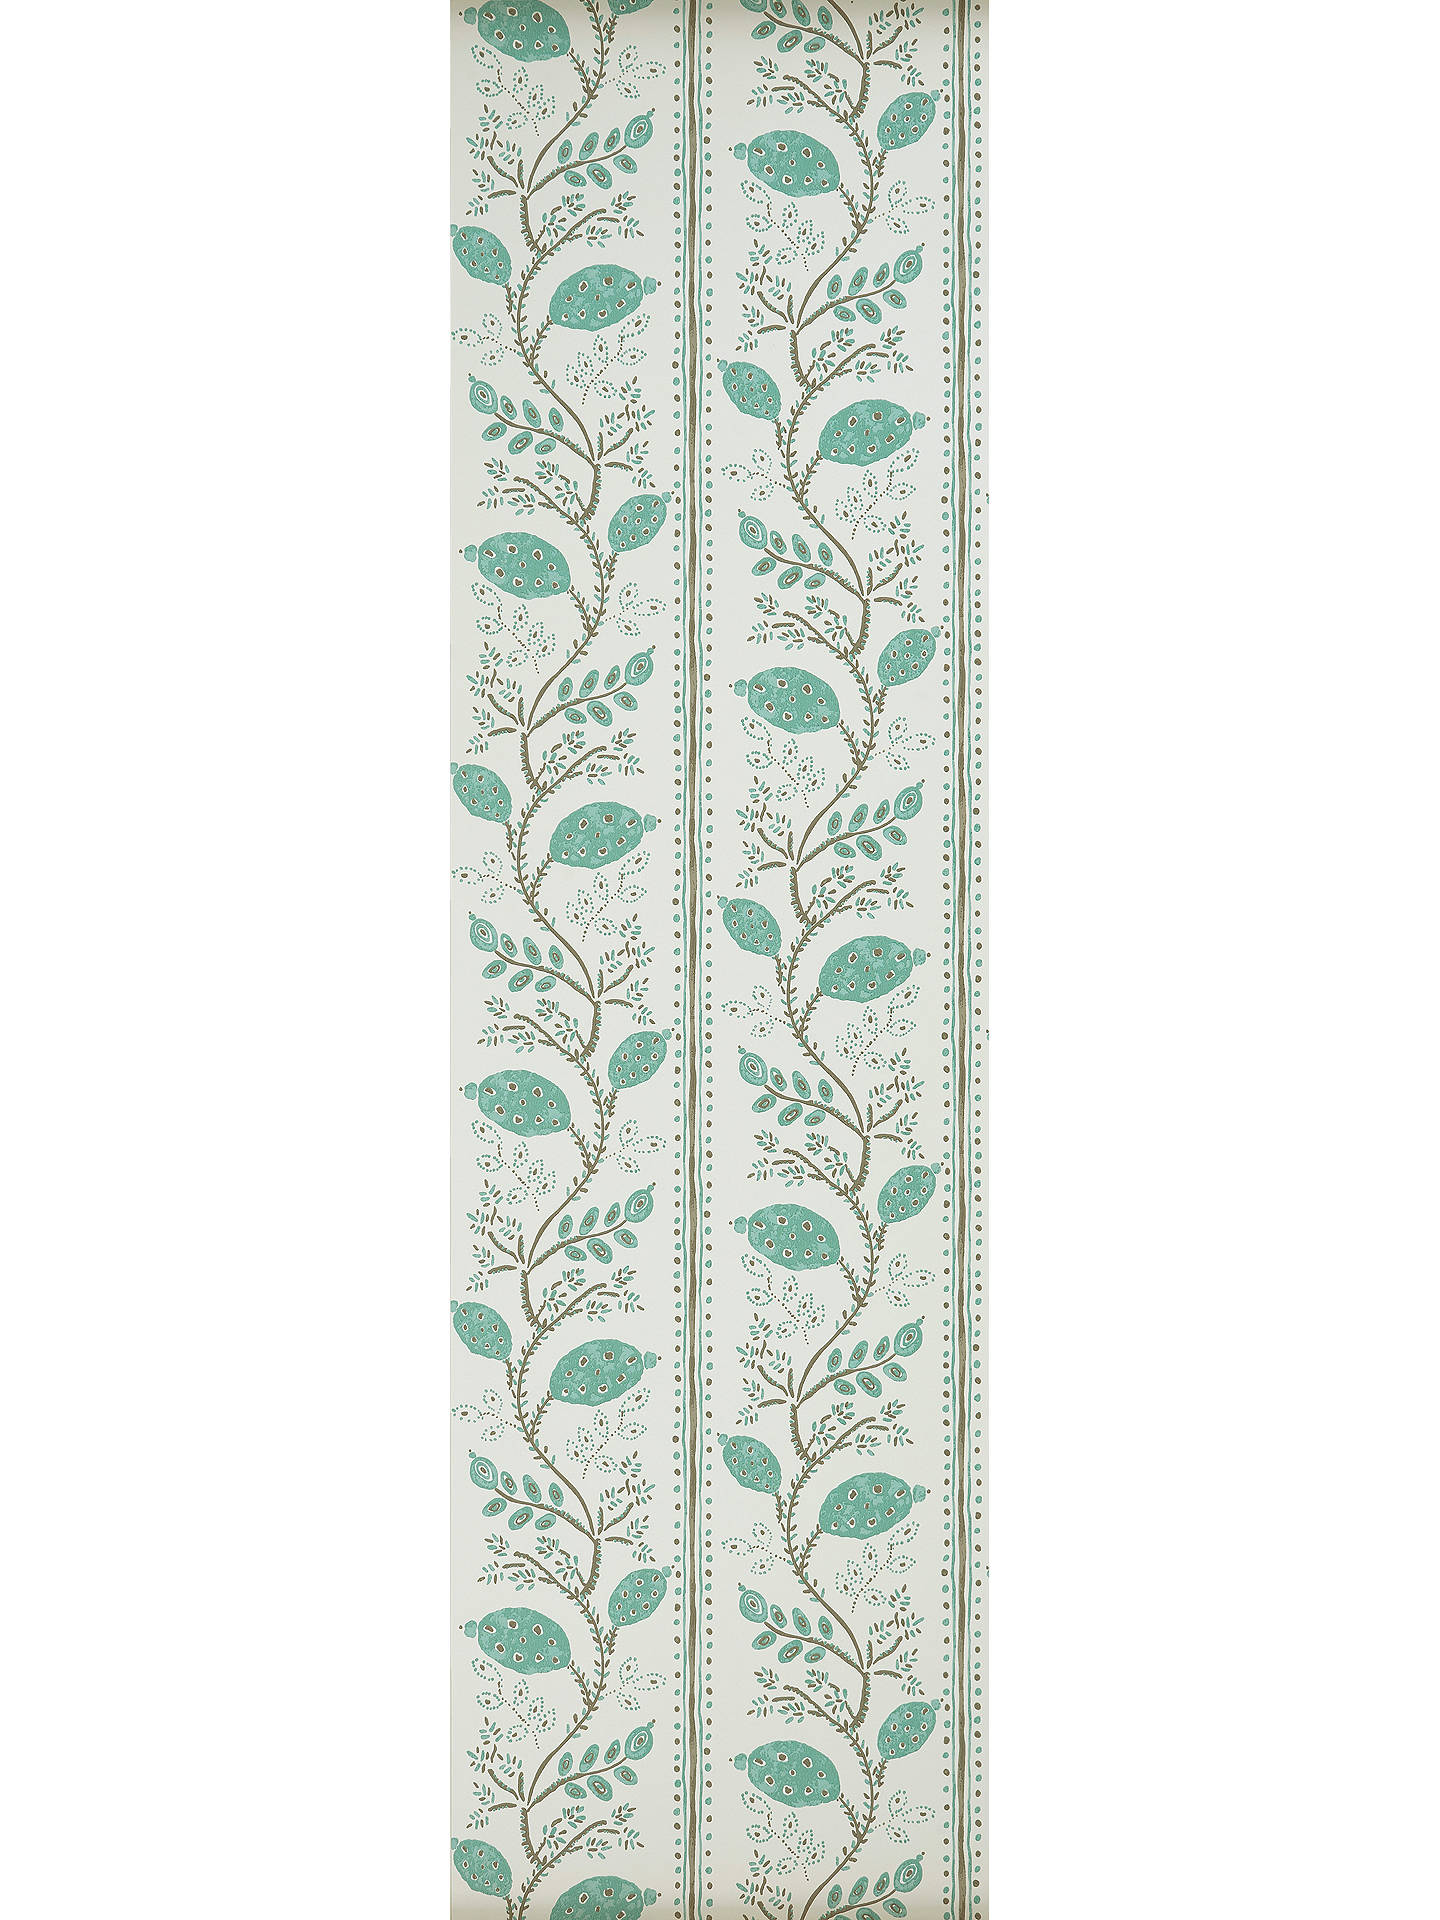 Buy Nina Campbell Pomegranate Trail Wallpaper, NCW4390-02 Online at johnlewis.com